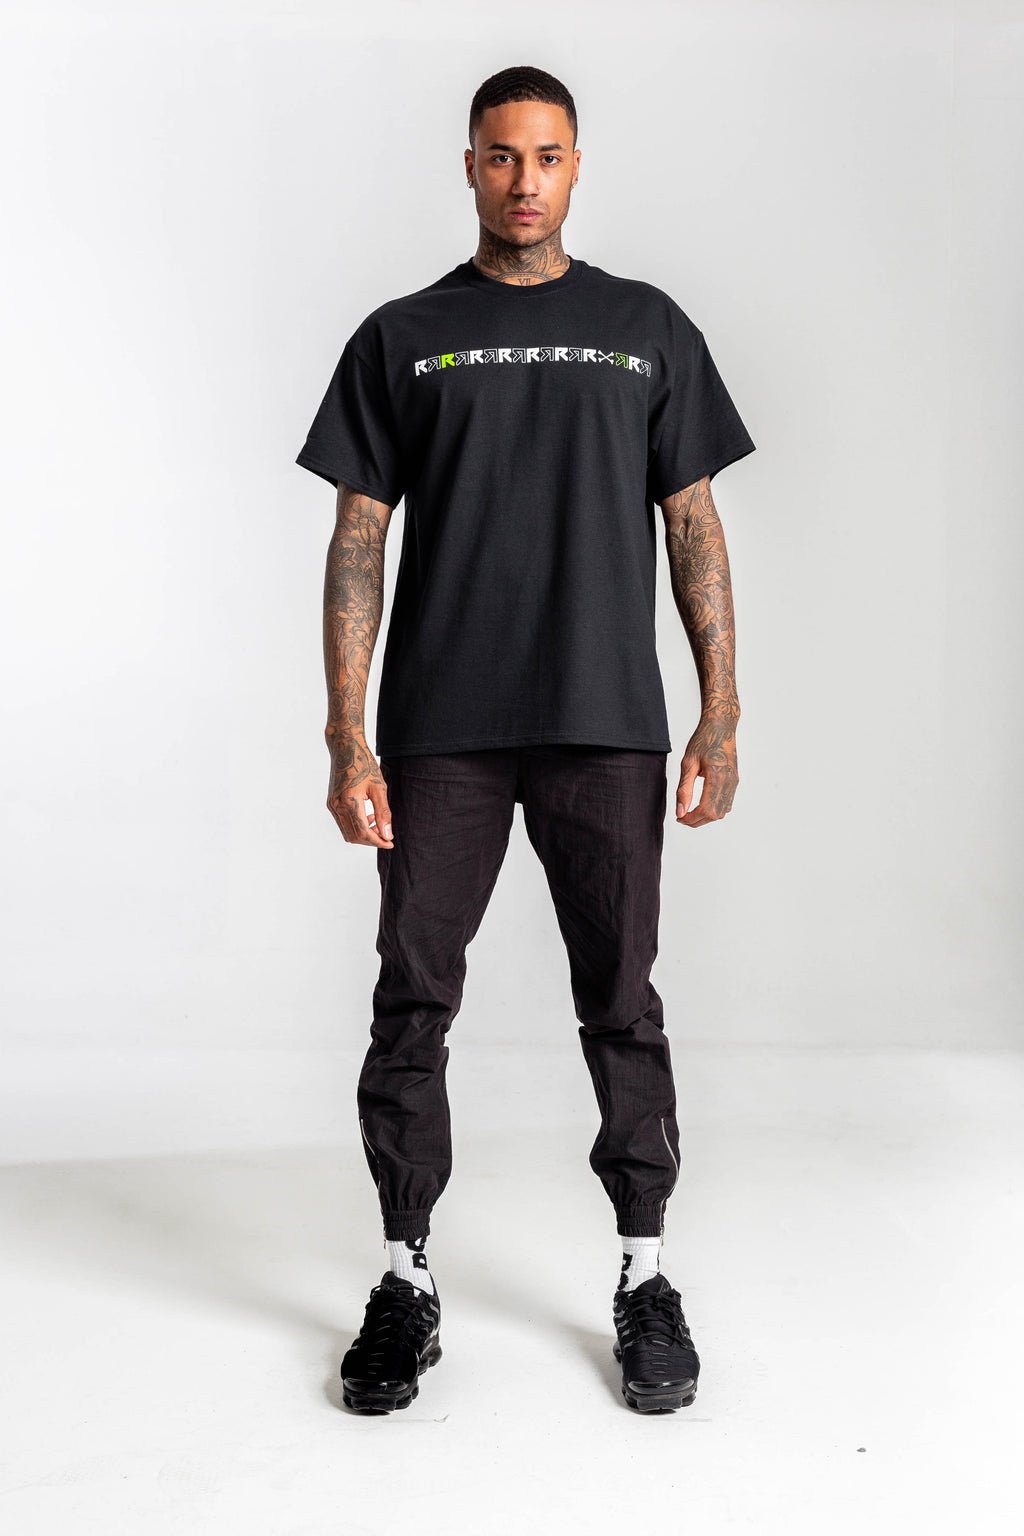 RSC Double R Bones Black Tshirt - Front print & Back Embroidery